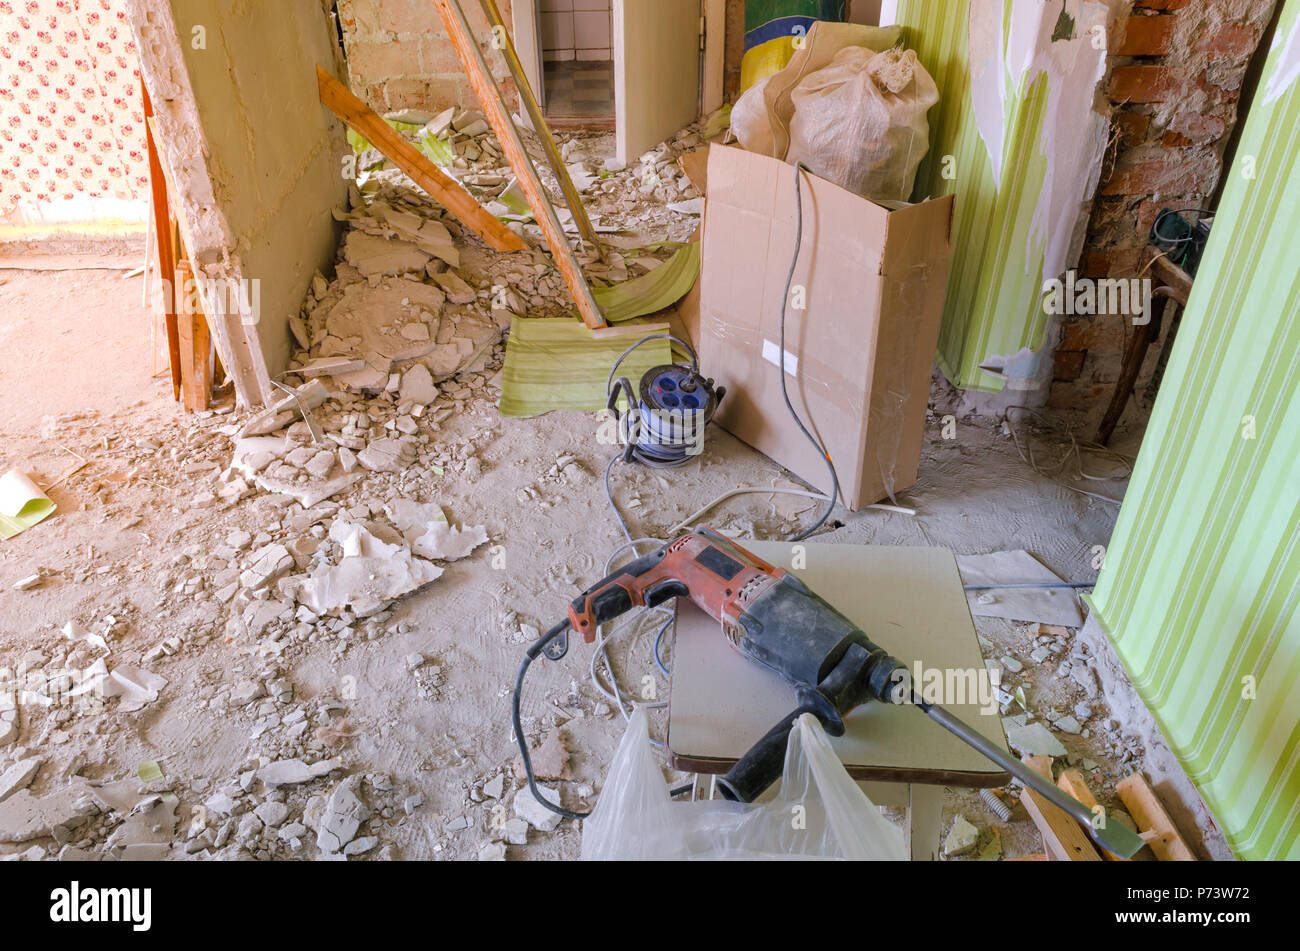 Drill on the dirty and dusty floor in a house under construction. - Stock Image